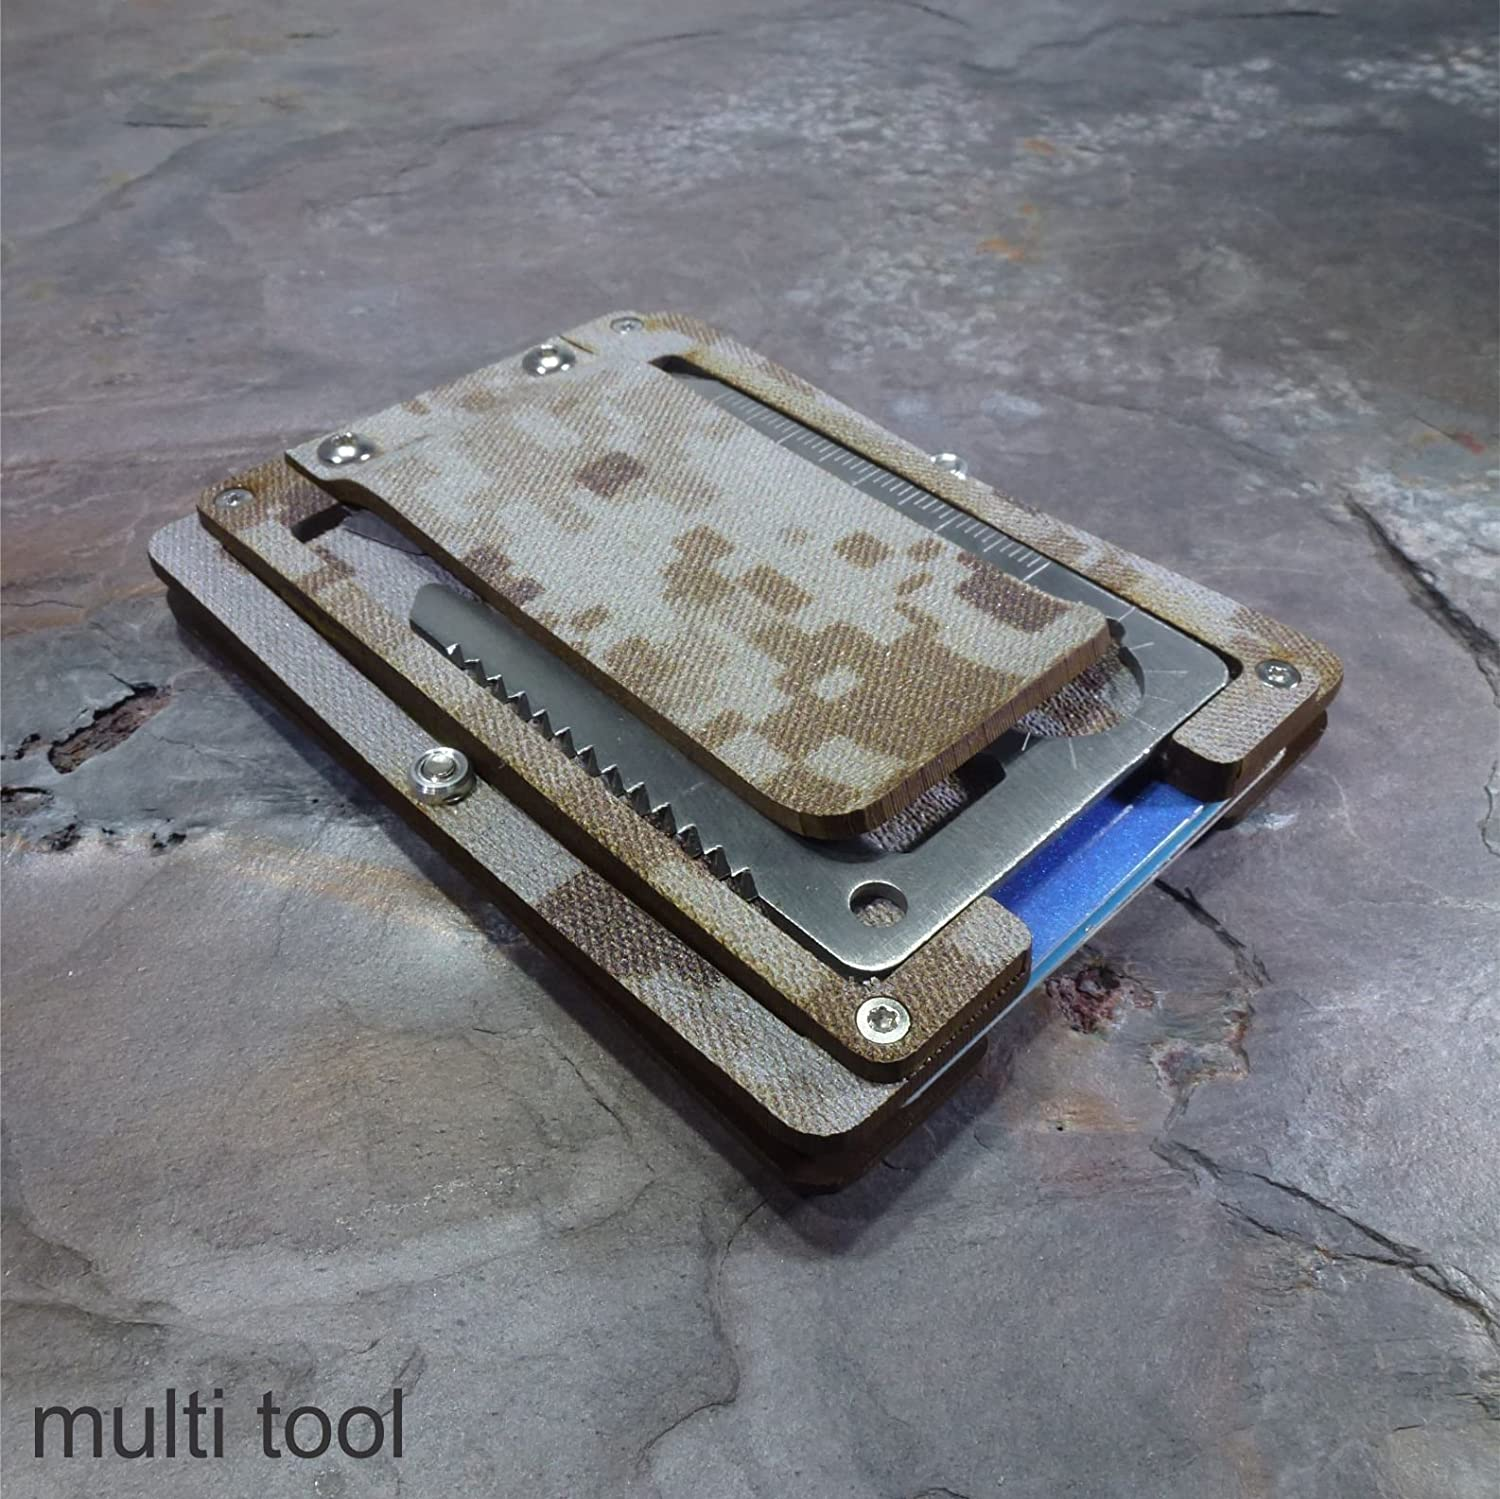 MultiWallet Desert Eagle Edition. Kydex Tactical Wallet With Money Clip and Multitool.